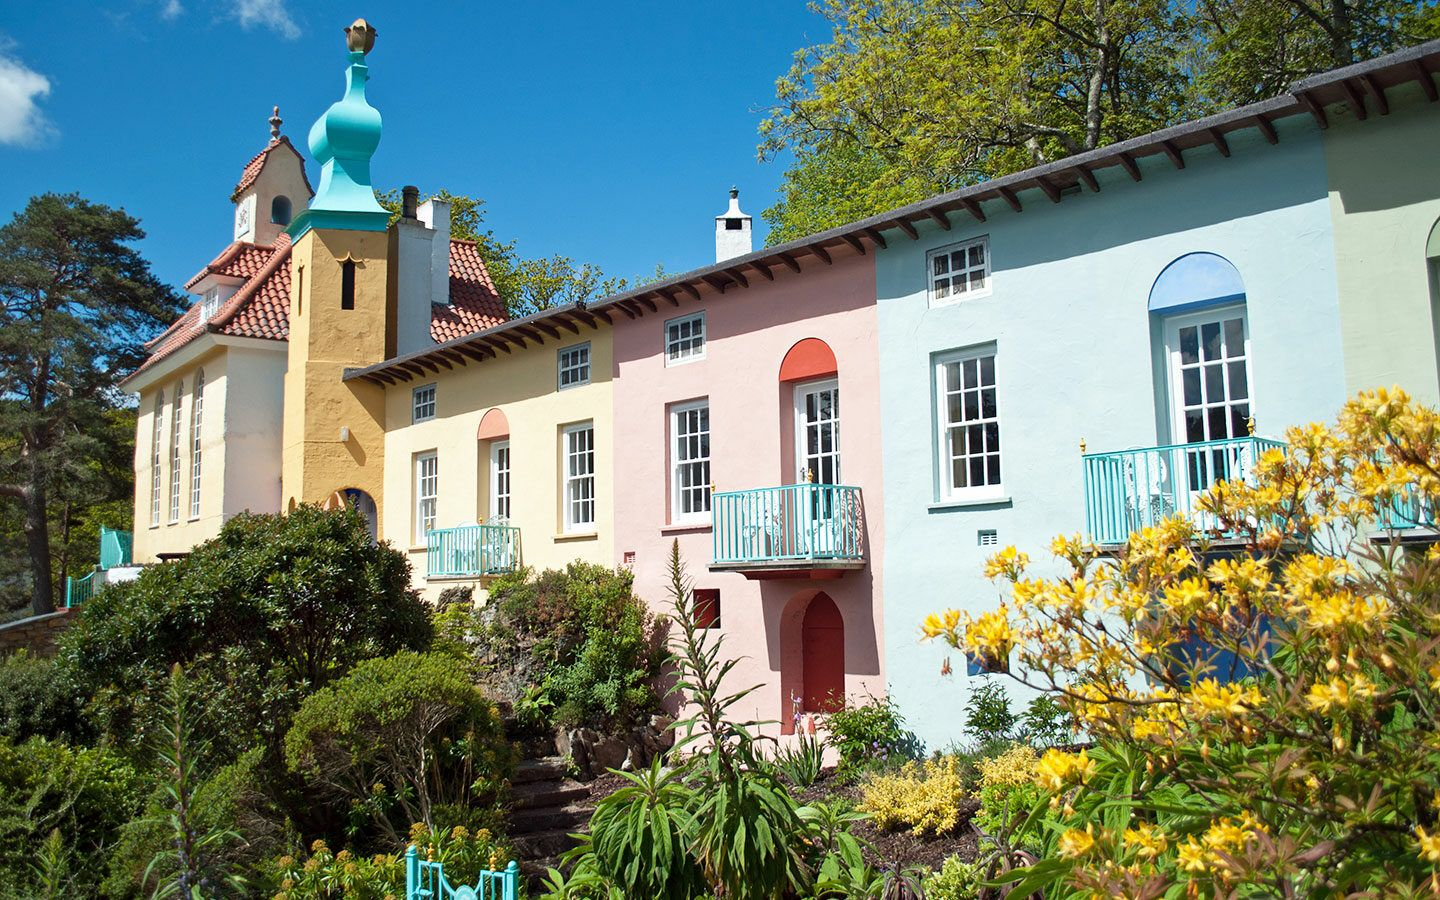 Colourful buildings in the the Italian-style village of Portmeirion in North Wales